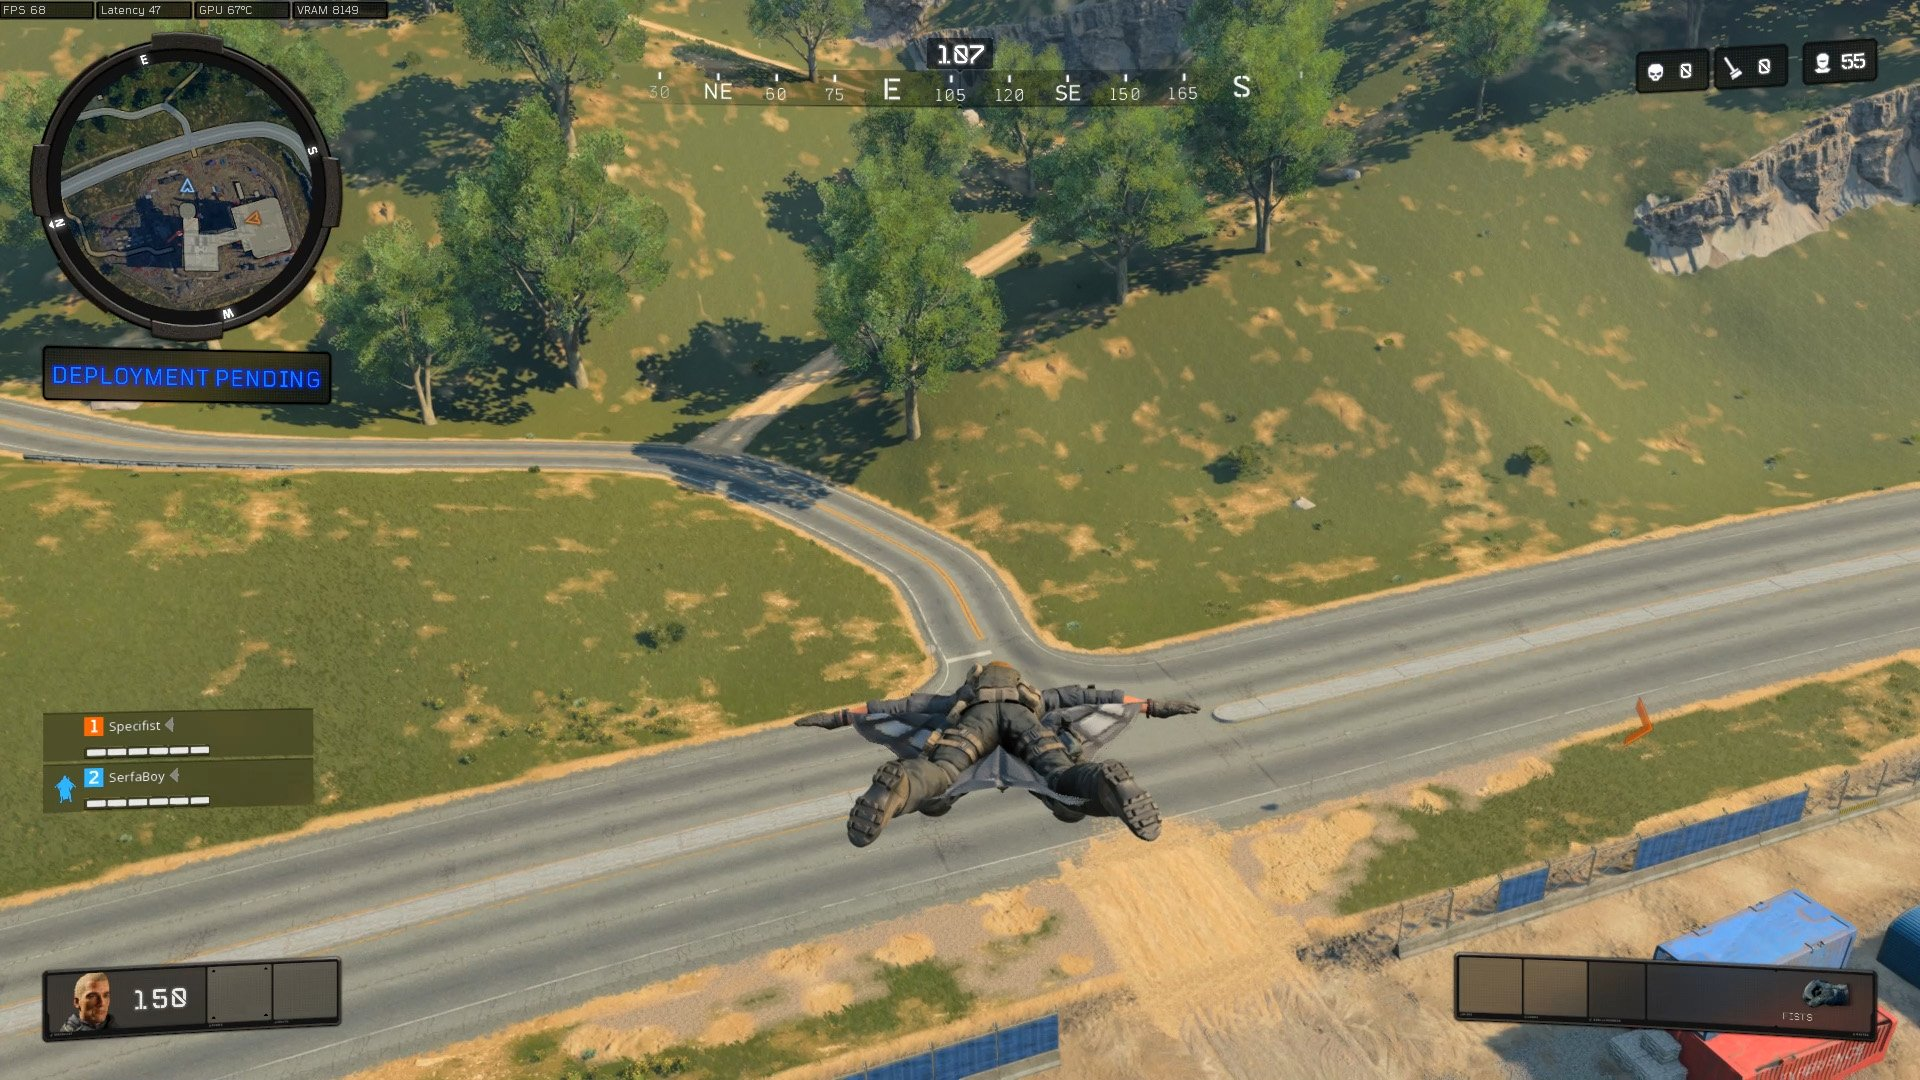 How to redeploy the wingsuit in Call of Duty Blackout